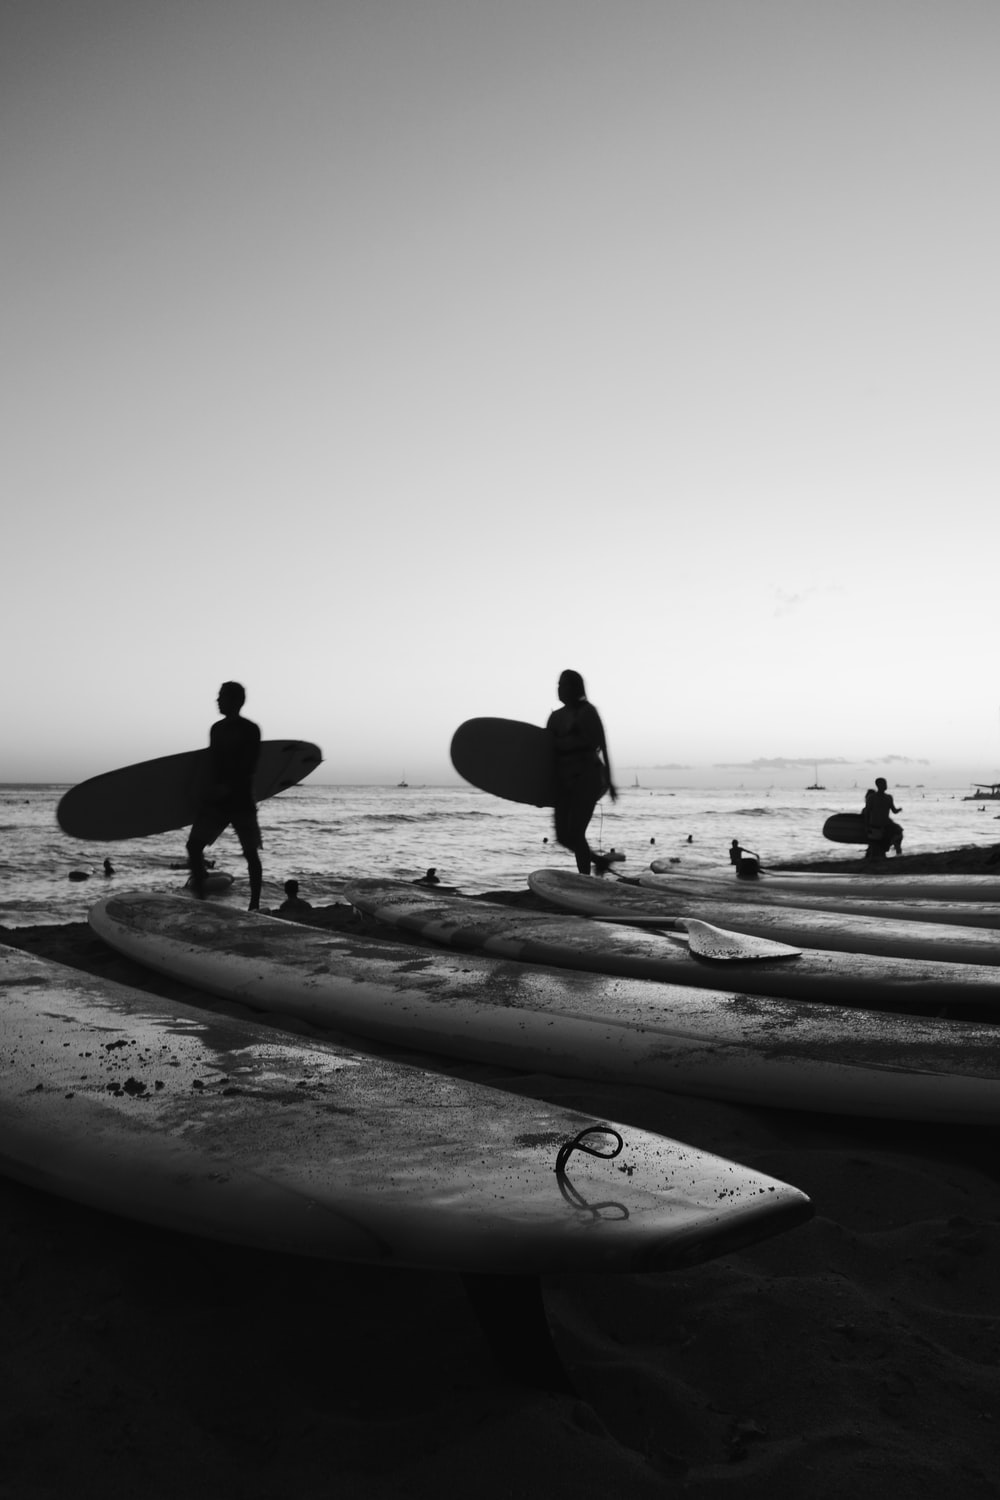 people on seashore in grayscale photo